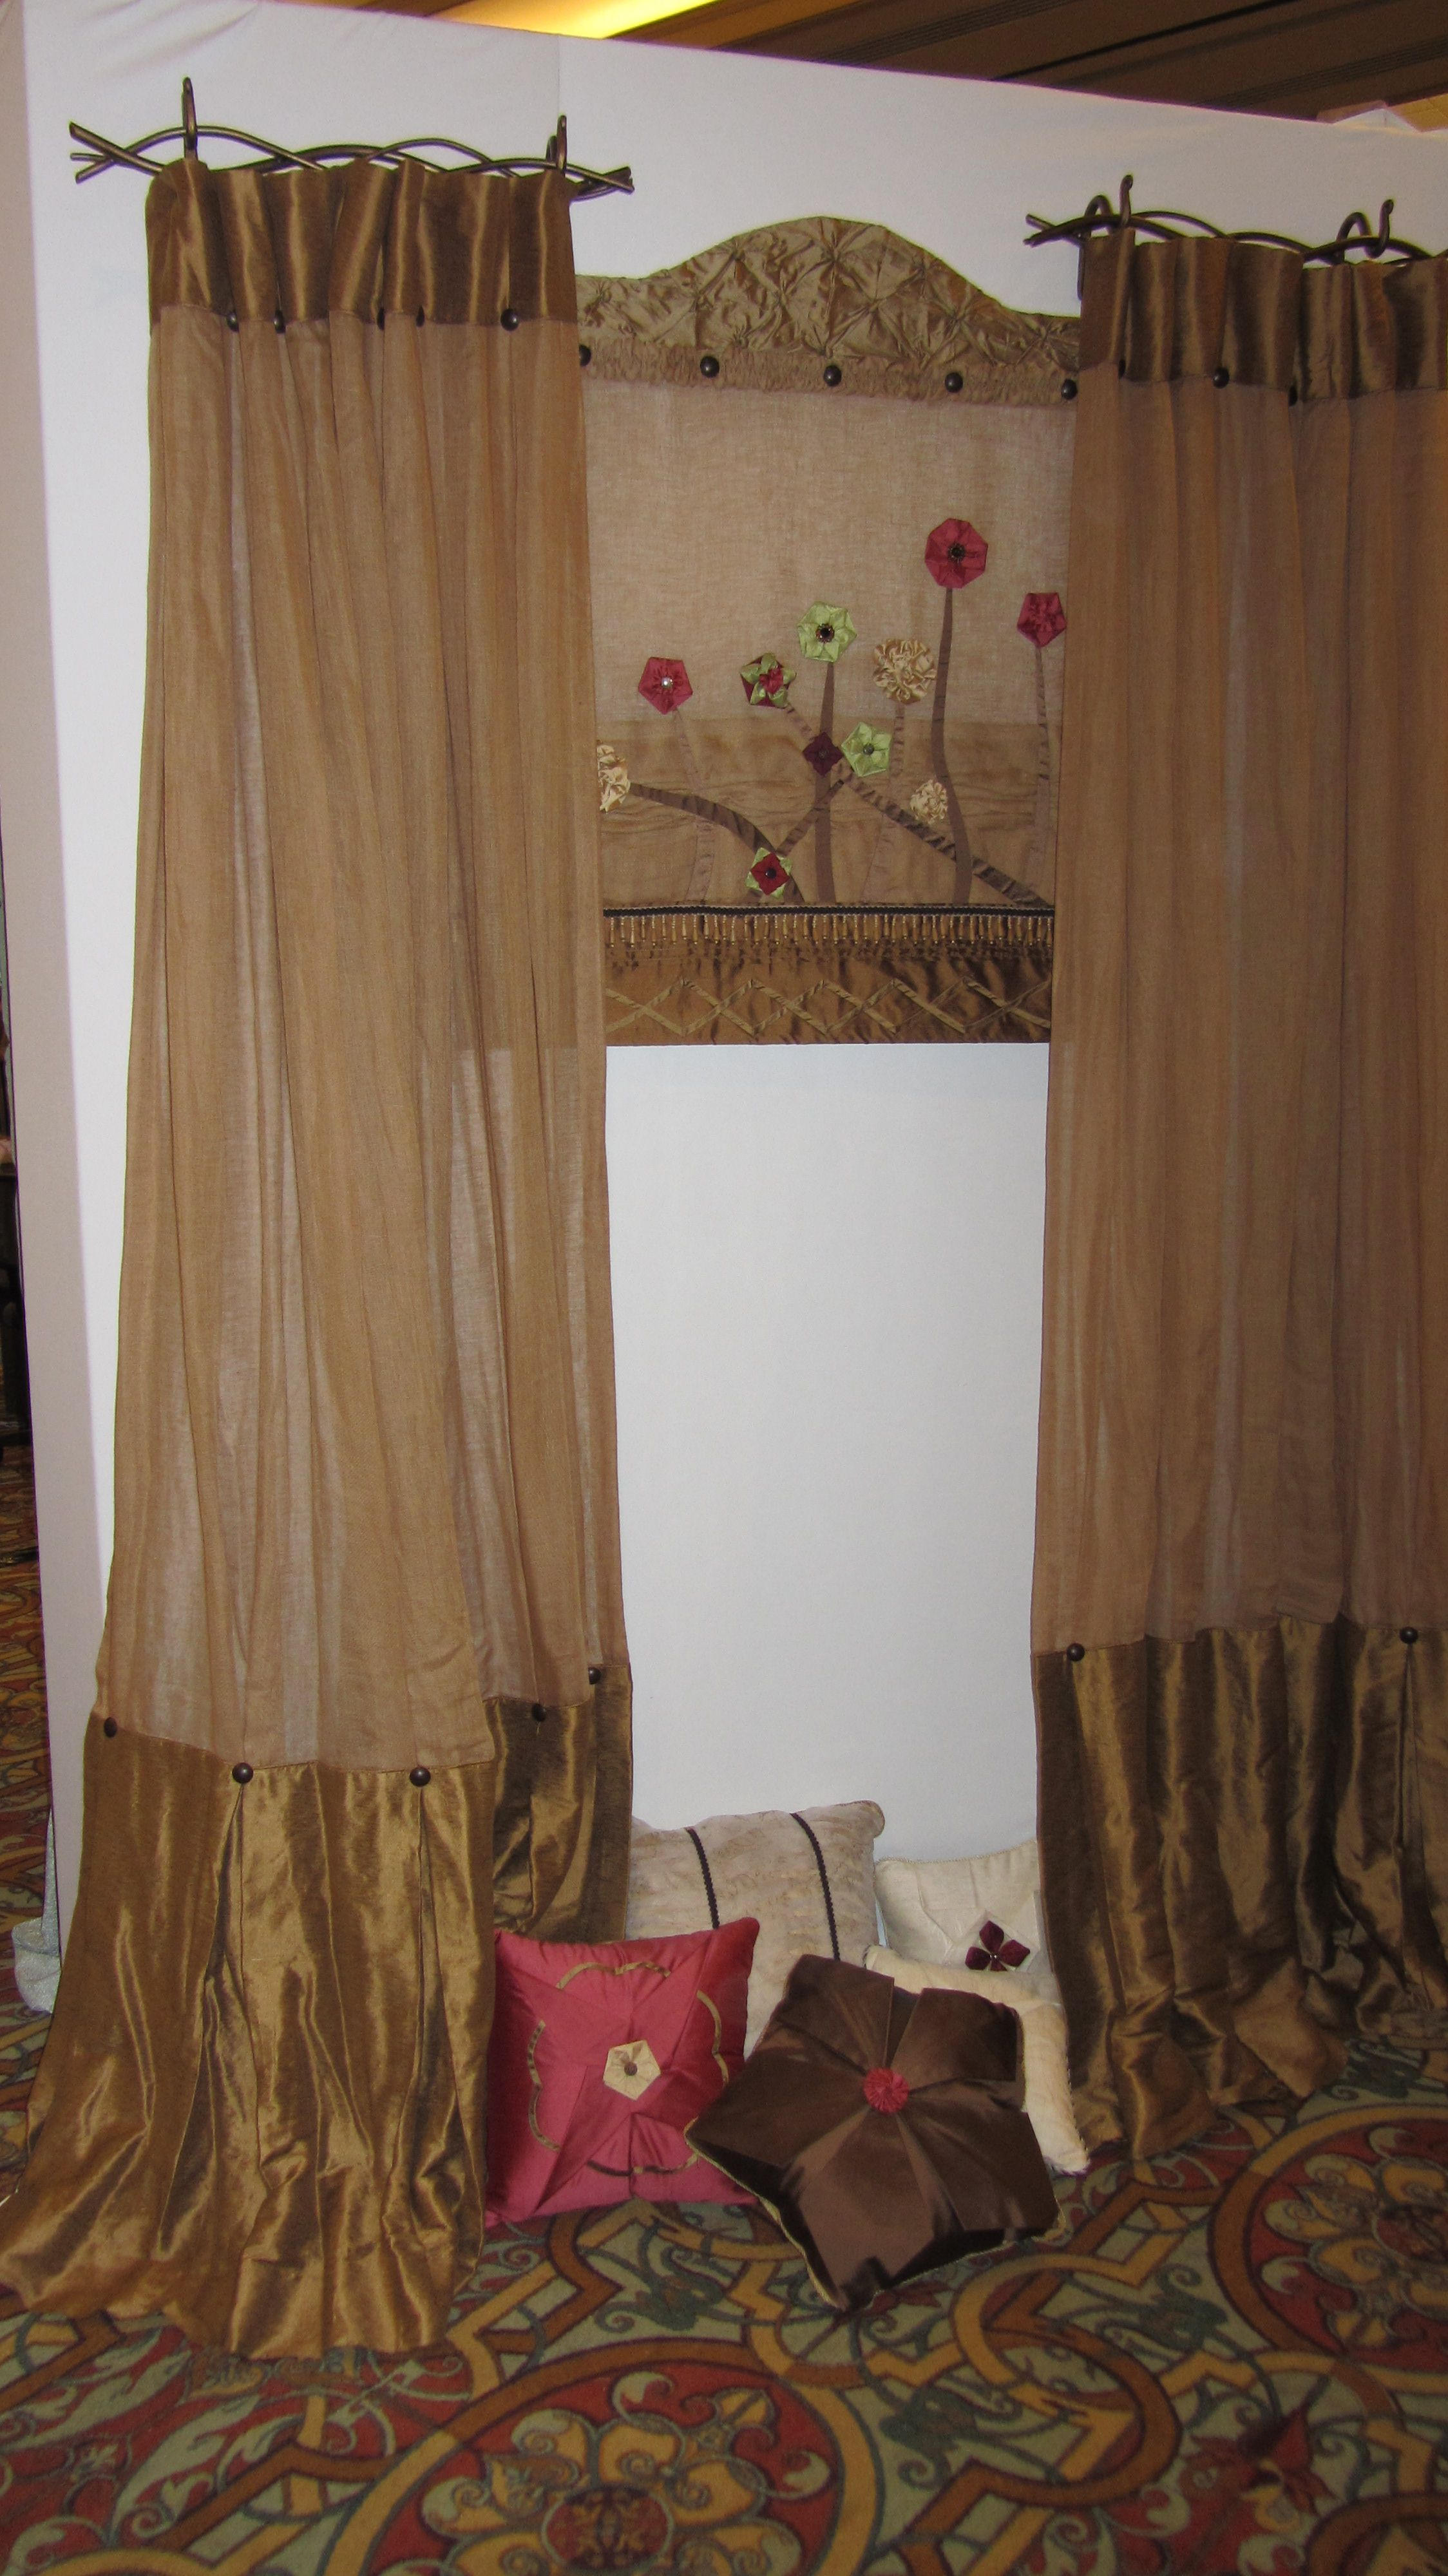 Twig Curtain Rods And Applique To Roman Shade Curtains